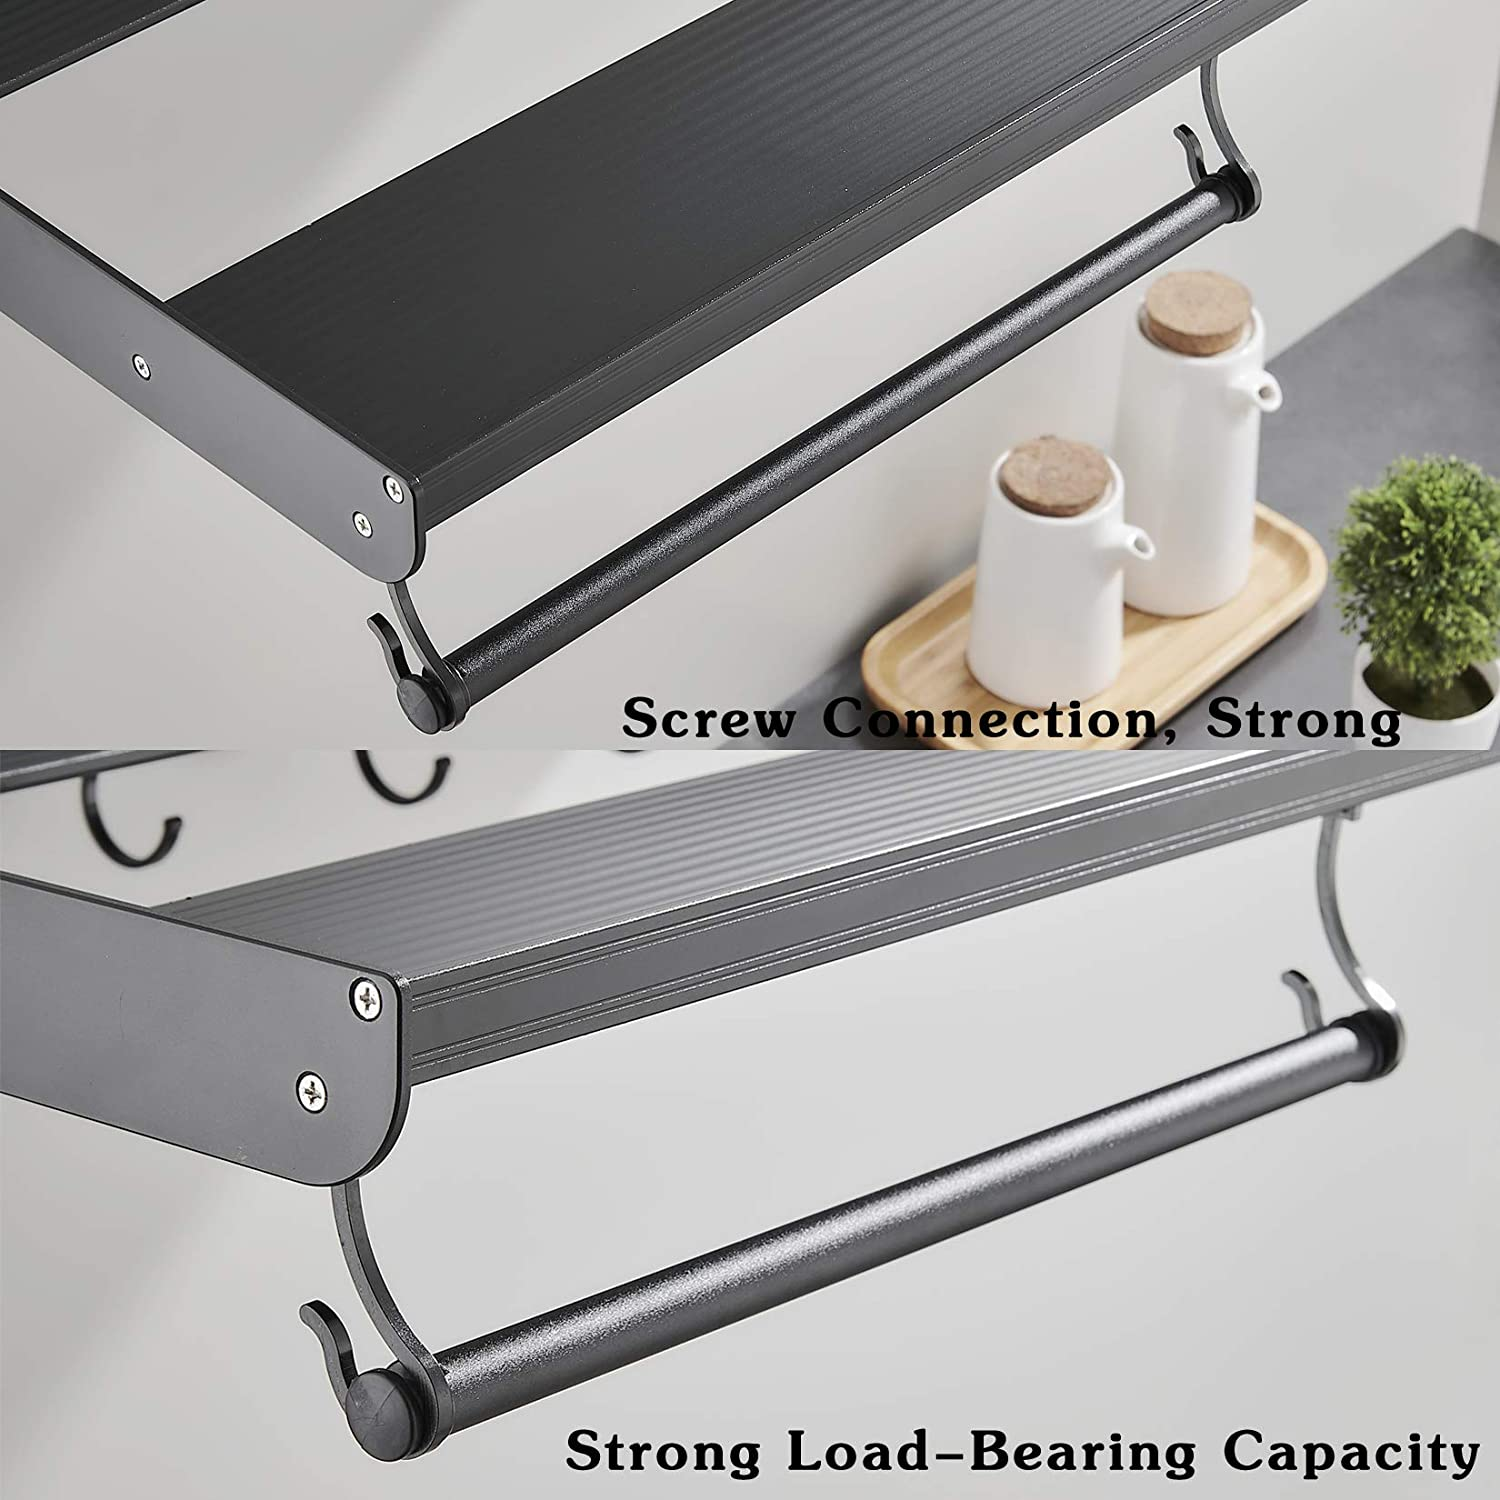 Microwave Wall Bracket Aluminum Alloy Kitchen Universal Shelf Wall Mounted Microwave Stand with Storage L 51.7 x W 15 x 3.35